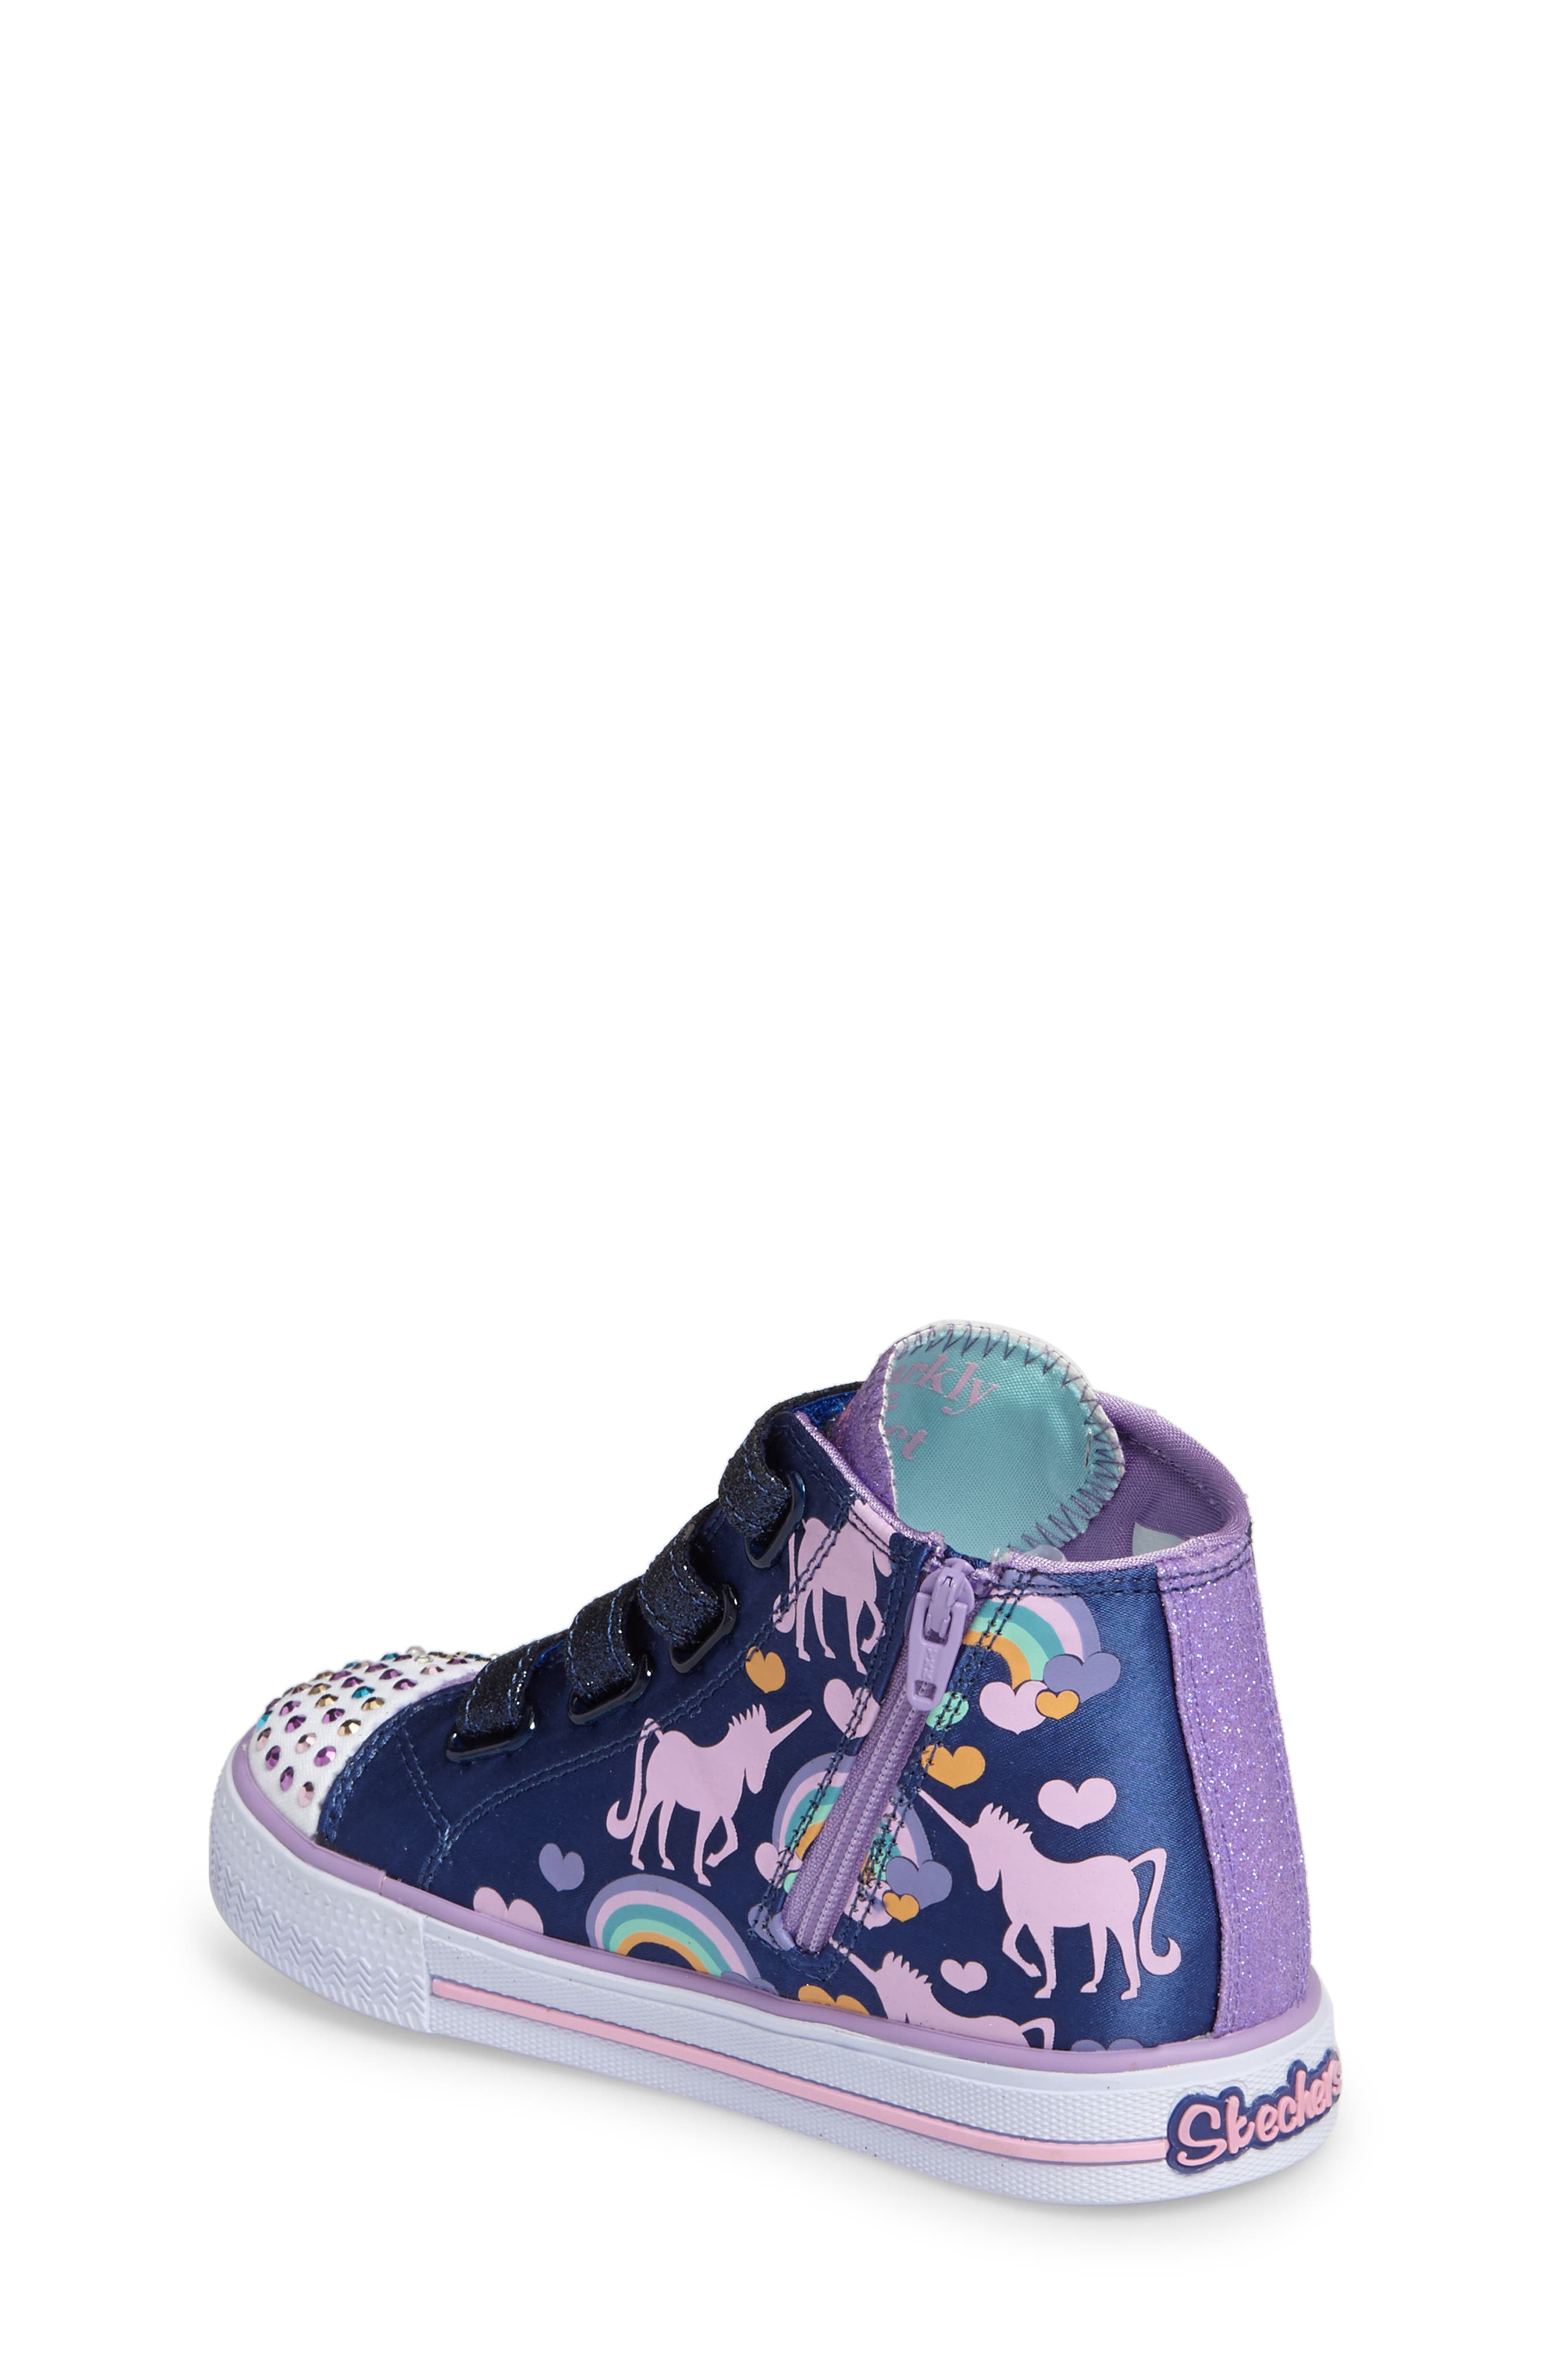 Twinkle Toes Shuffles High Top Sneaker,                             Alternate thumbnail 2, color,                             400